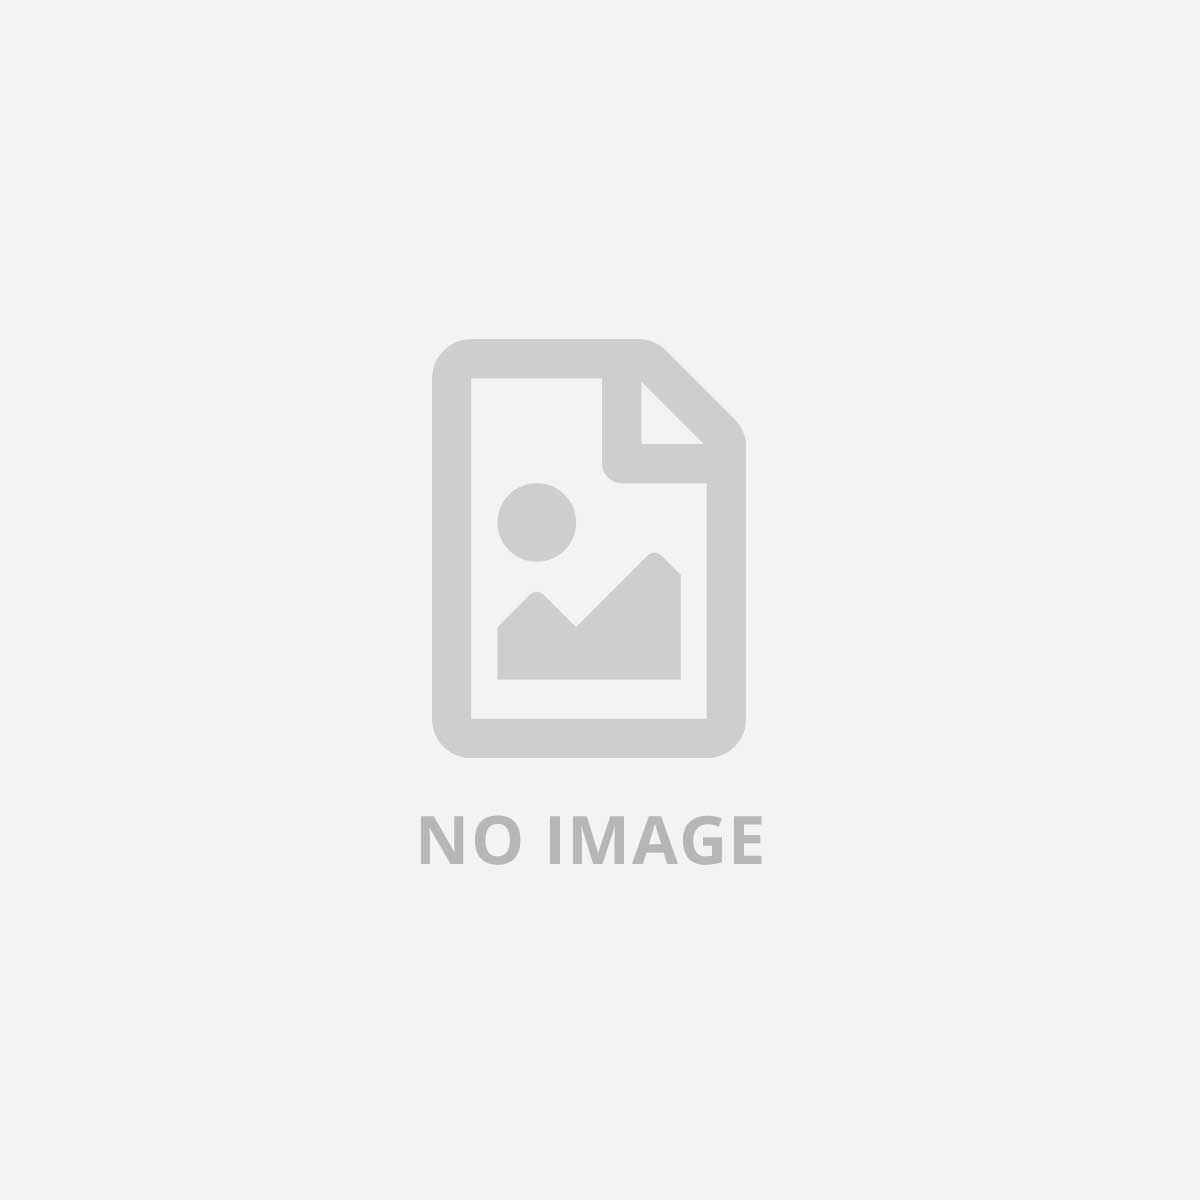 MAXCOM MM142 BLACK